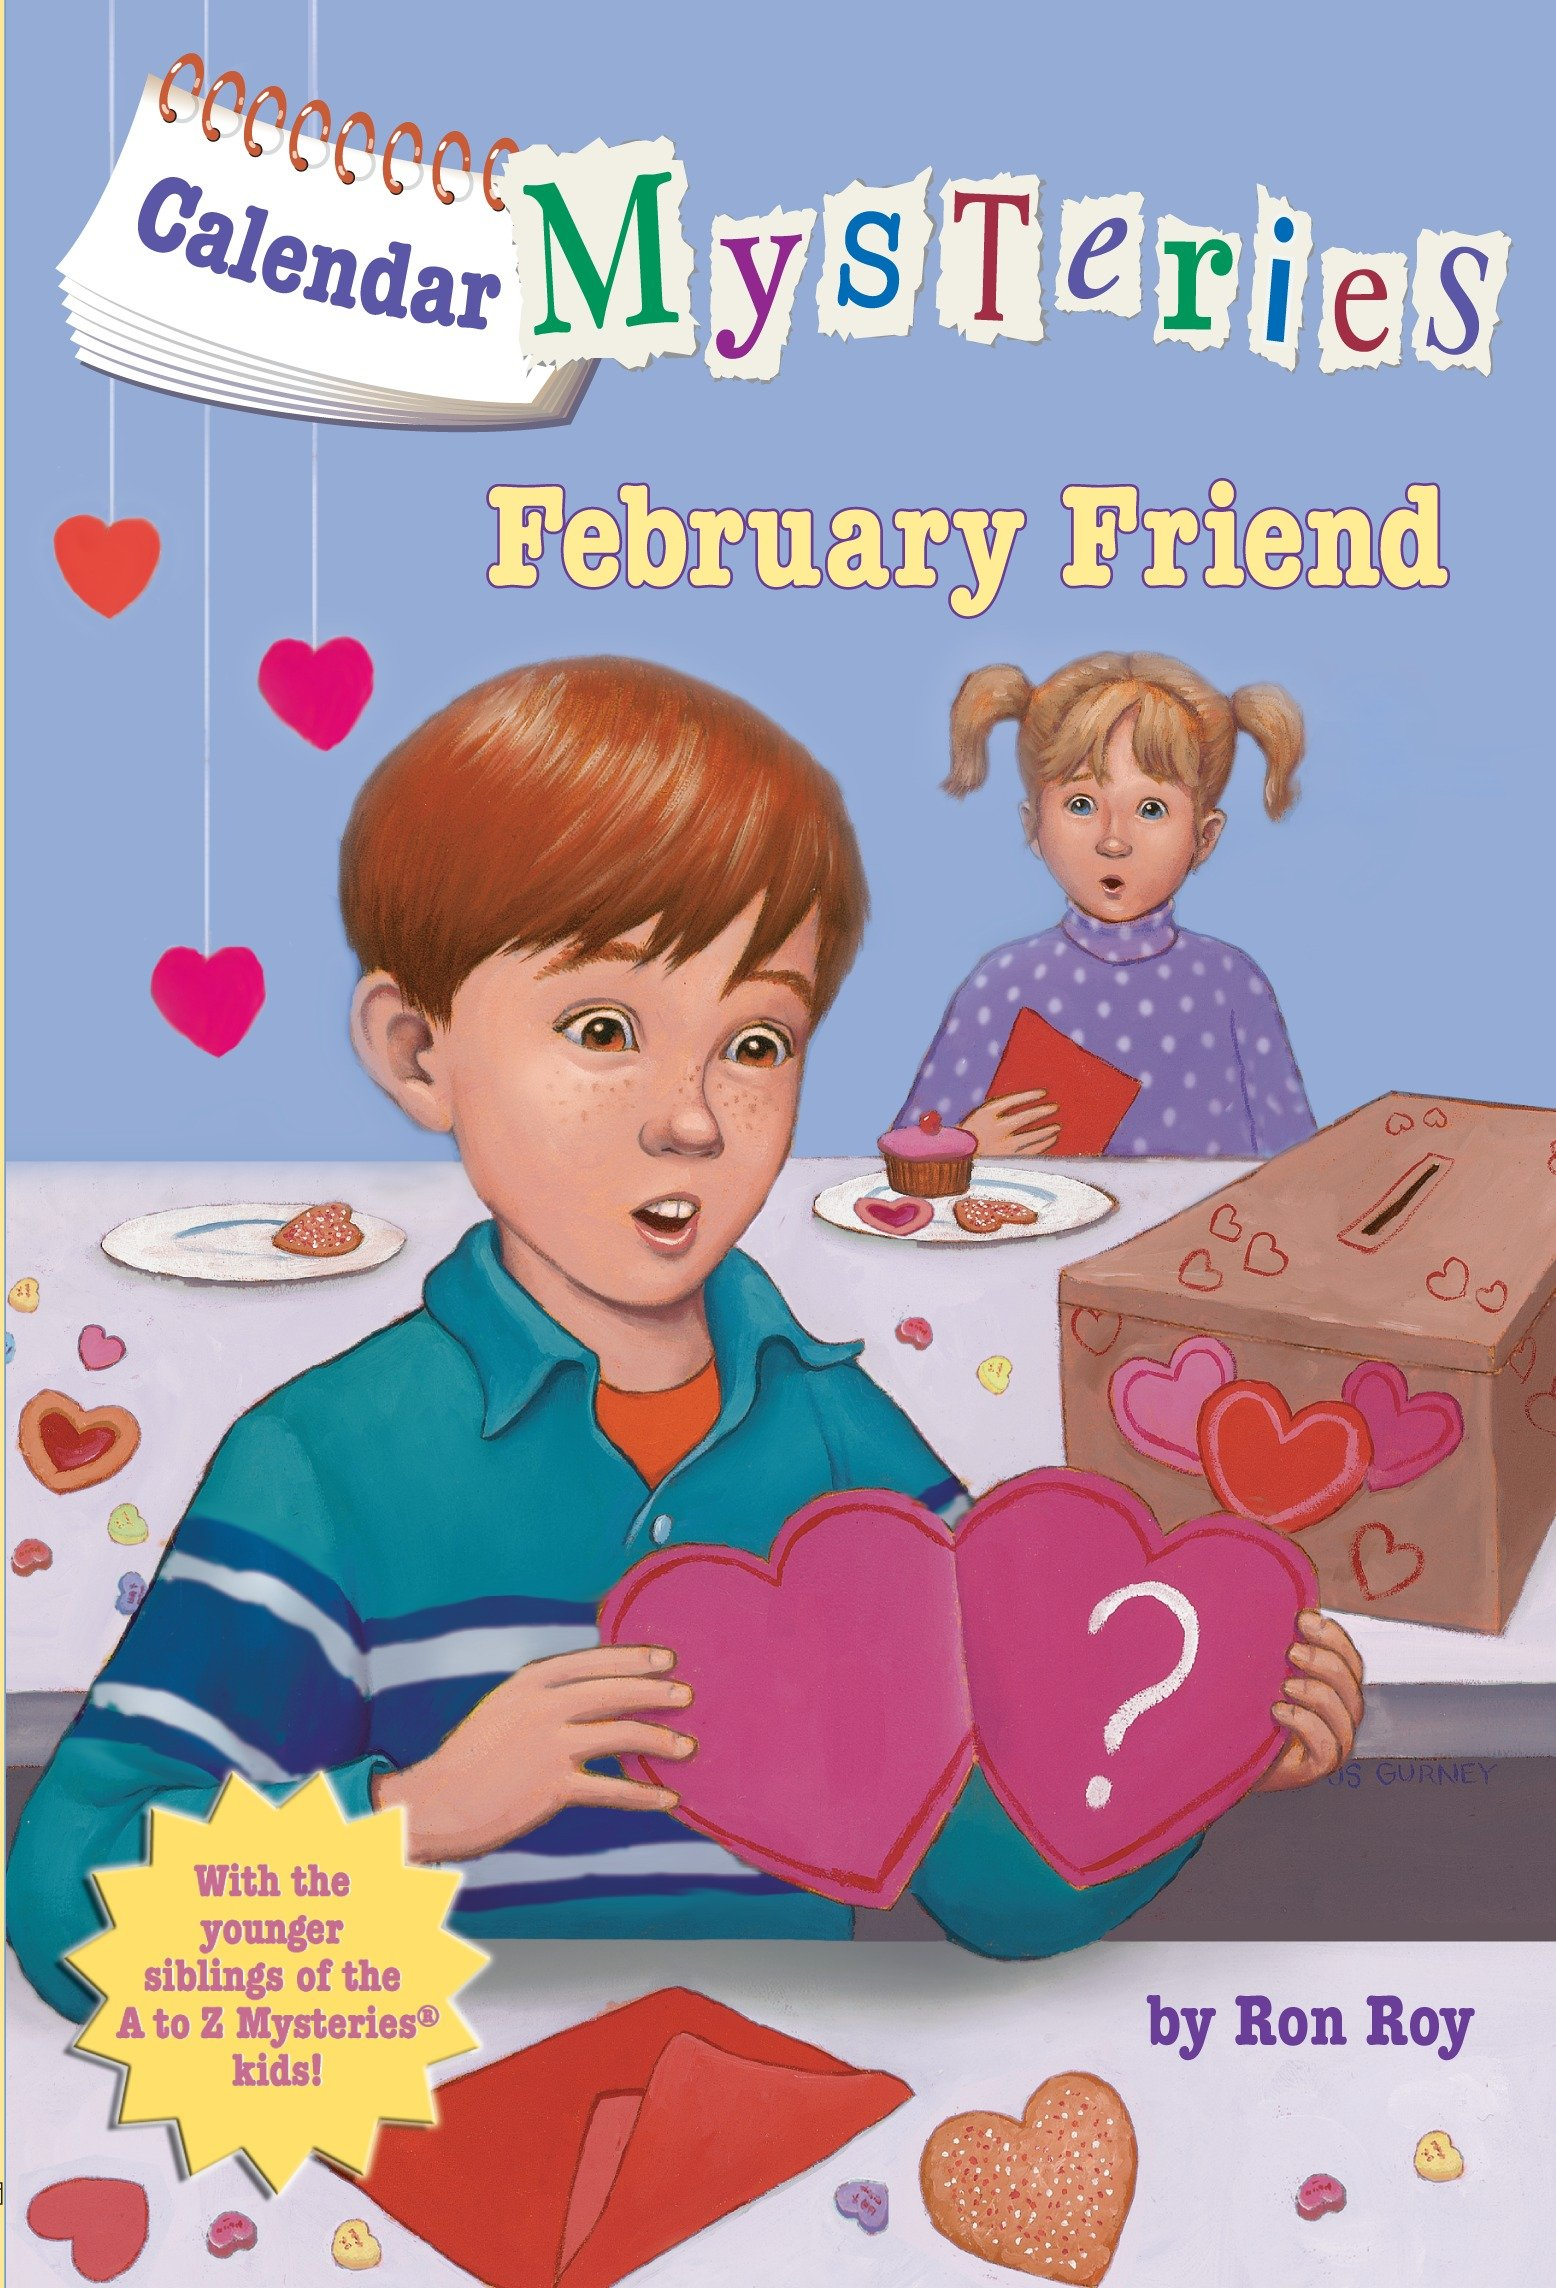 February Friend cover image